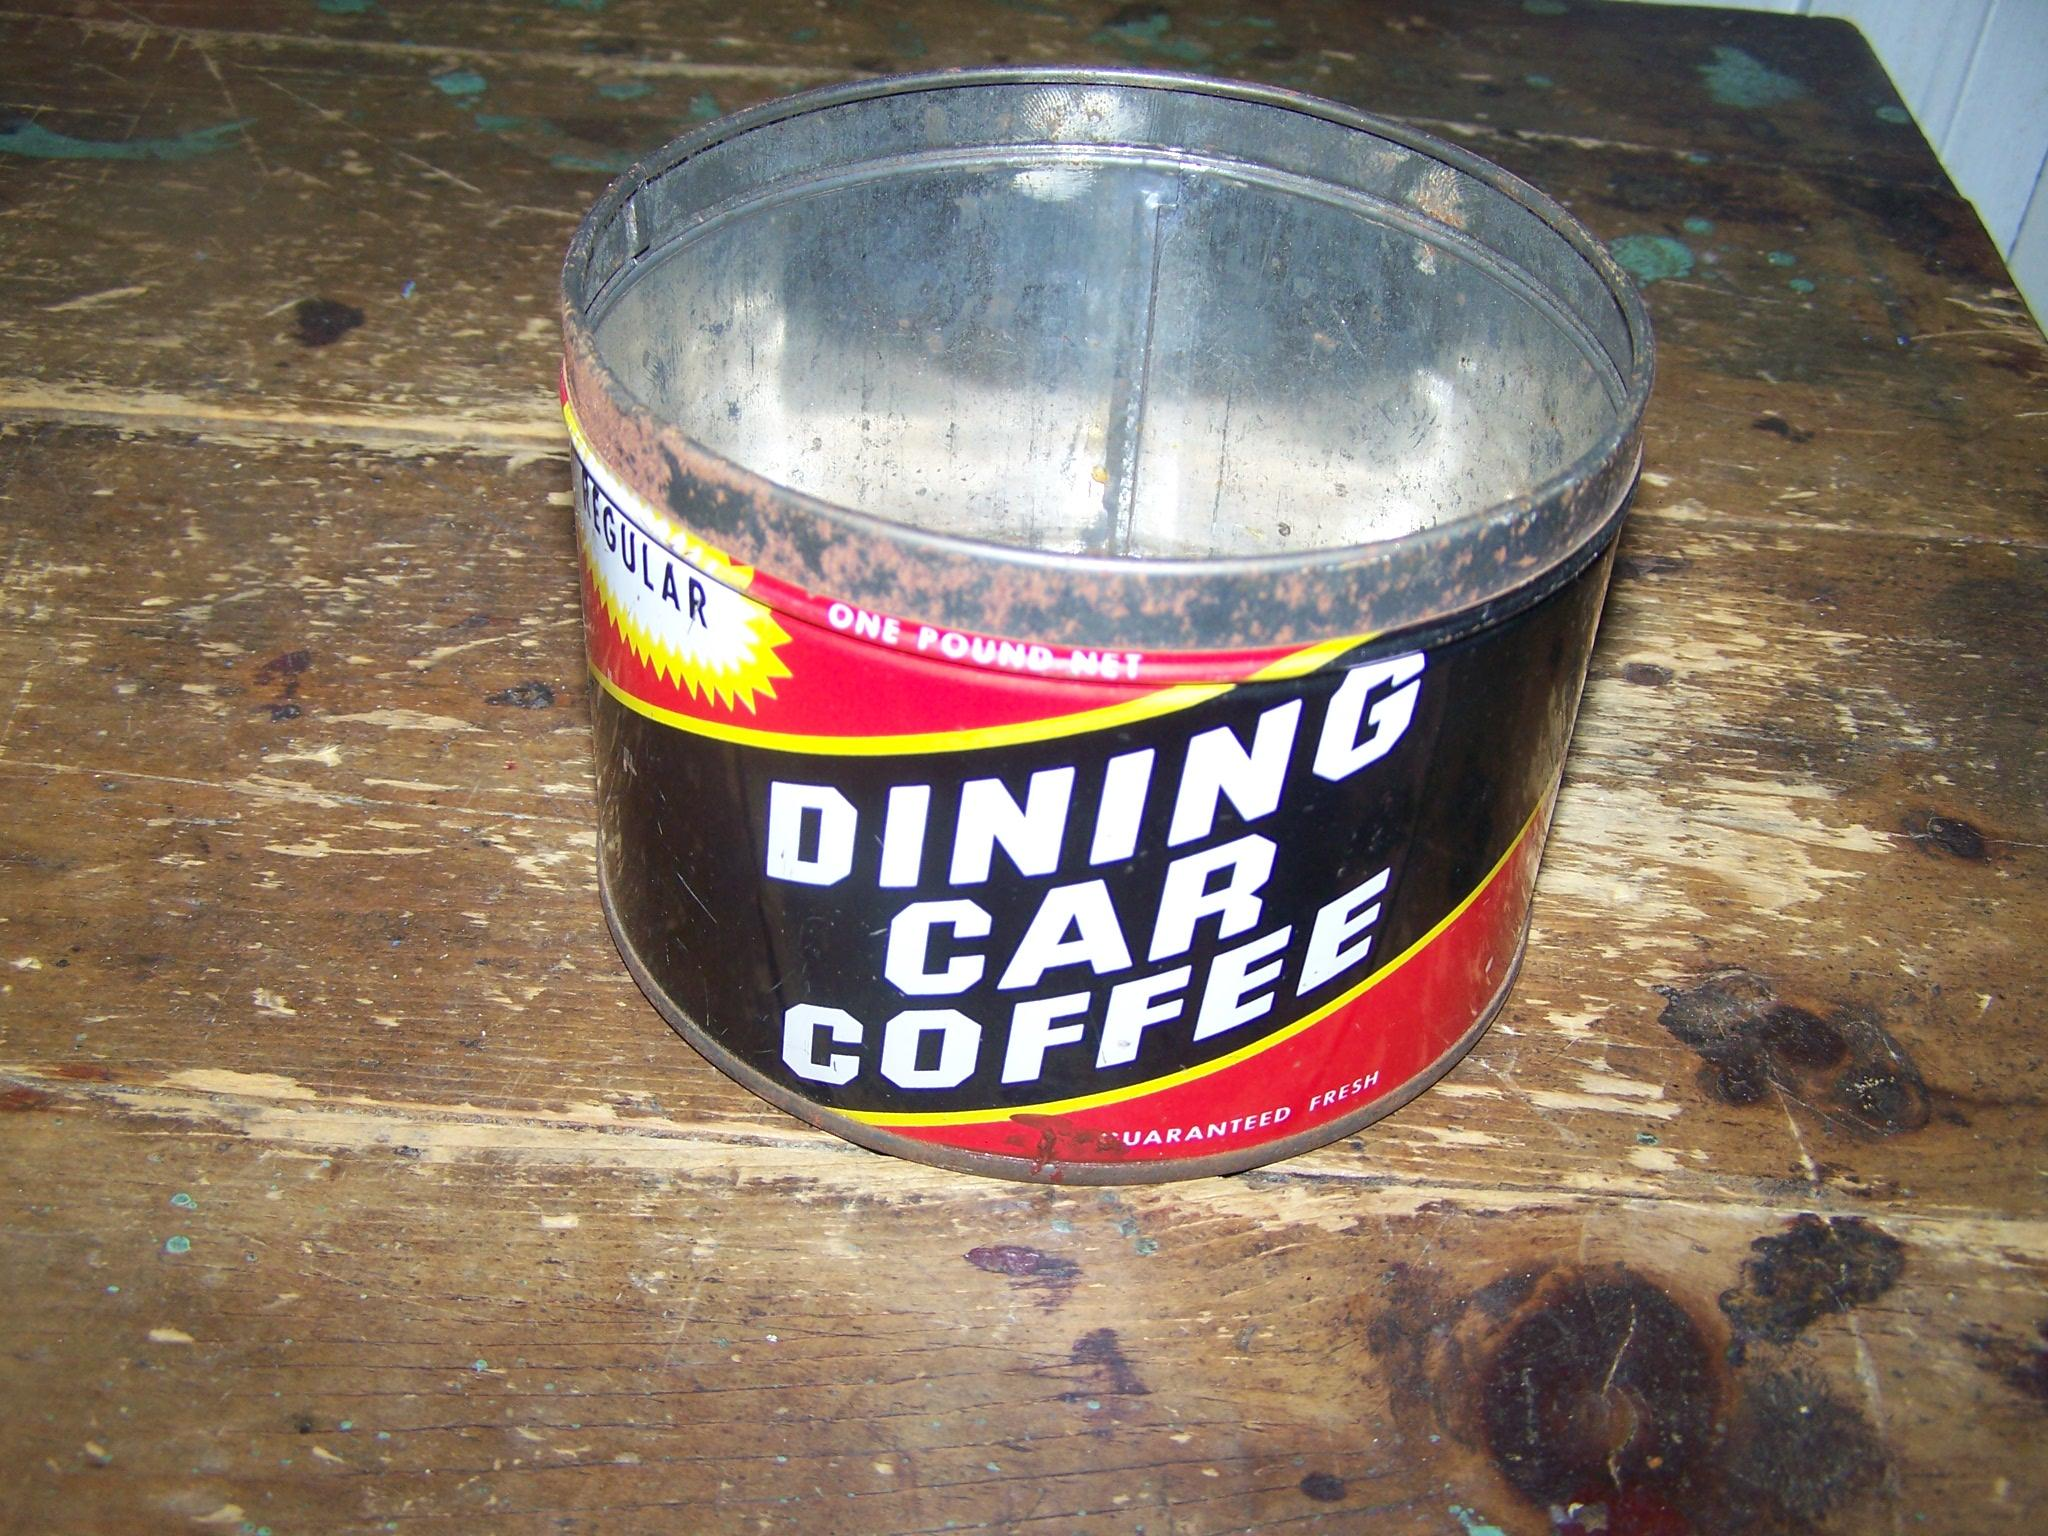 L Furniture Warehouse Victoria Bc Of Vintage Collectible Dining Car Coffee Advertising Tin Can